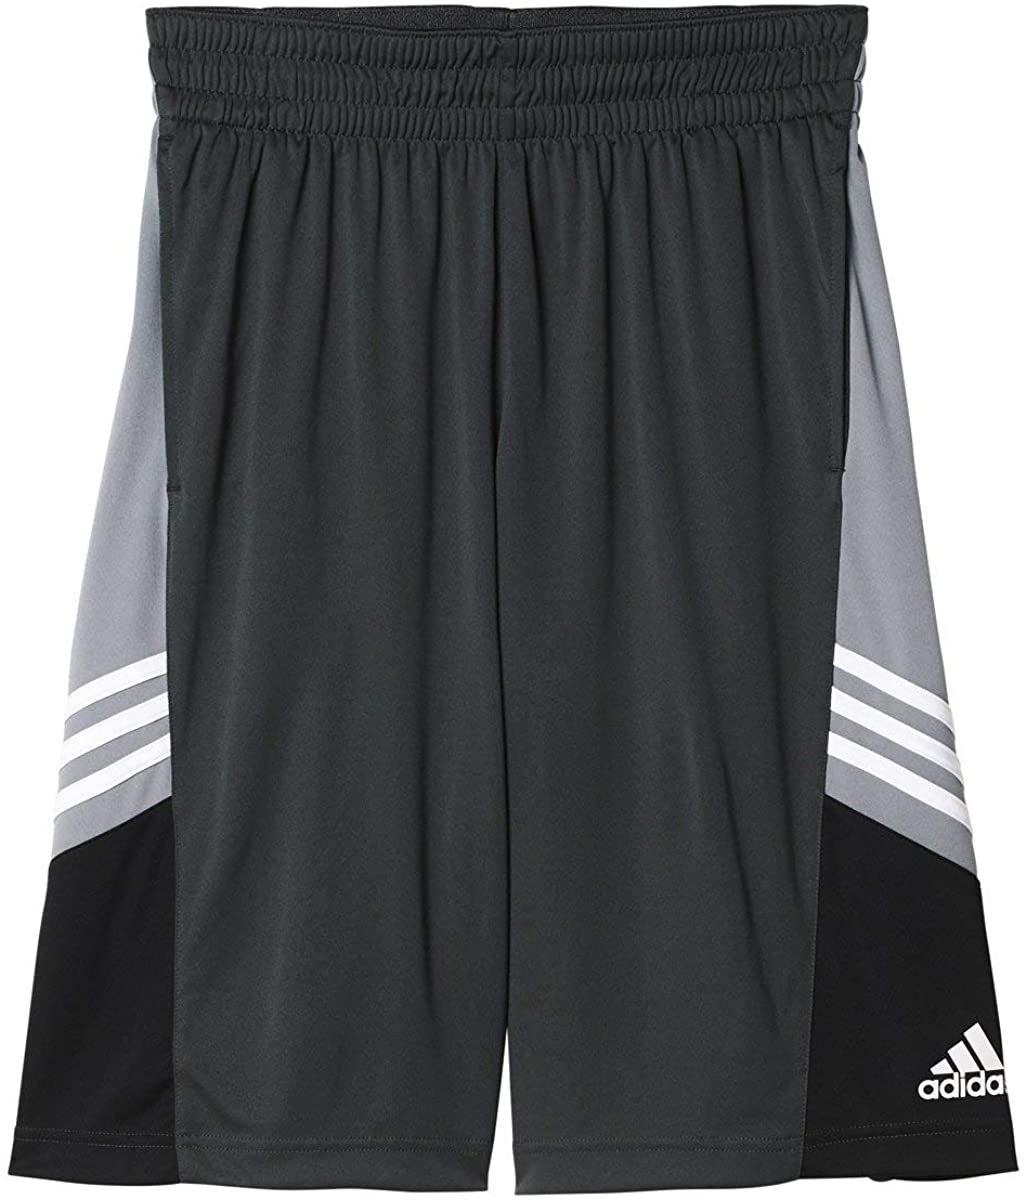 adidas Men's Basketball Team Speed Pregame Shorts